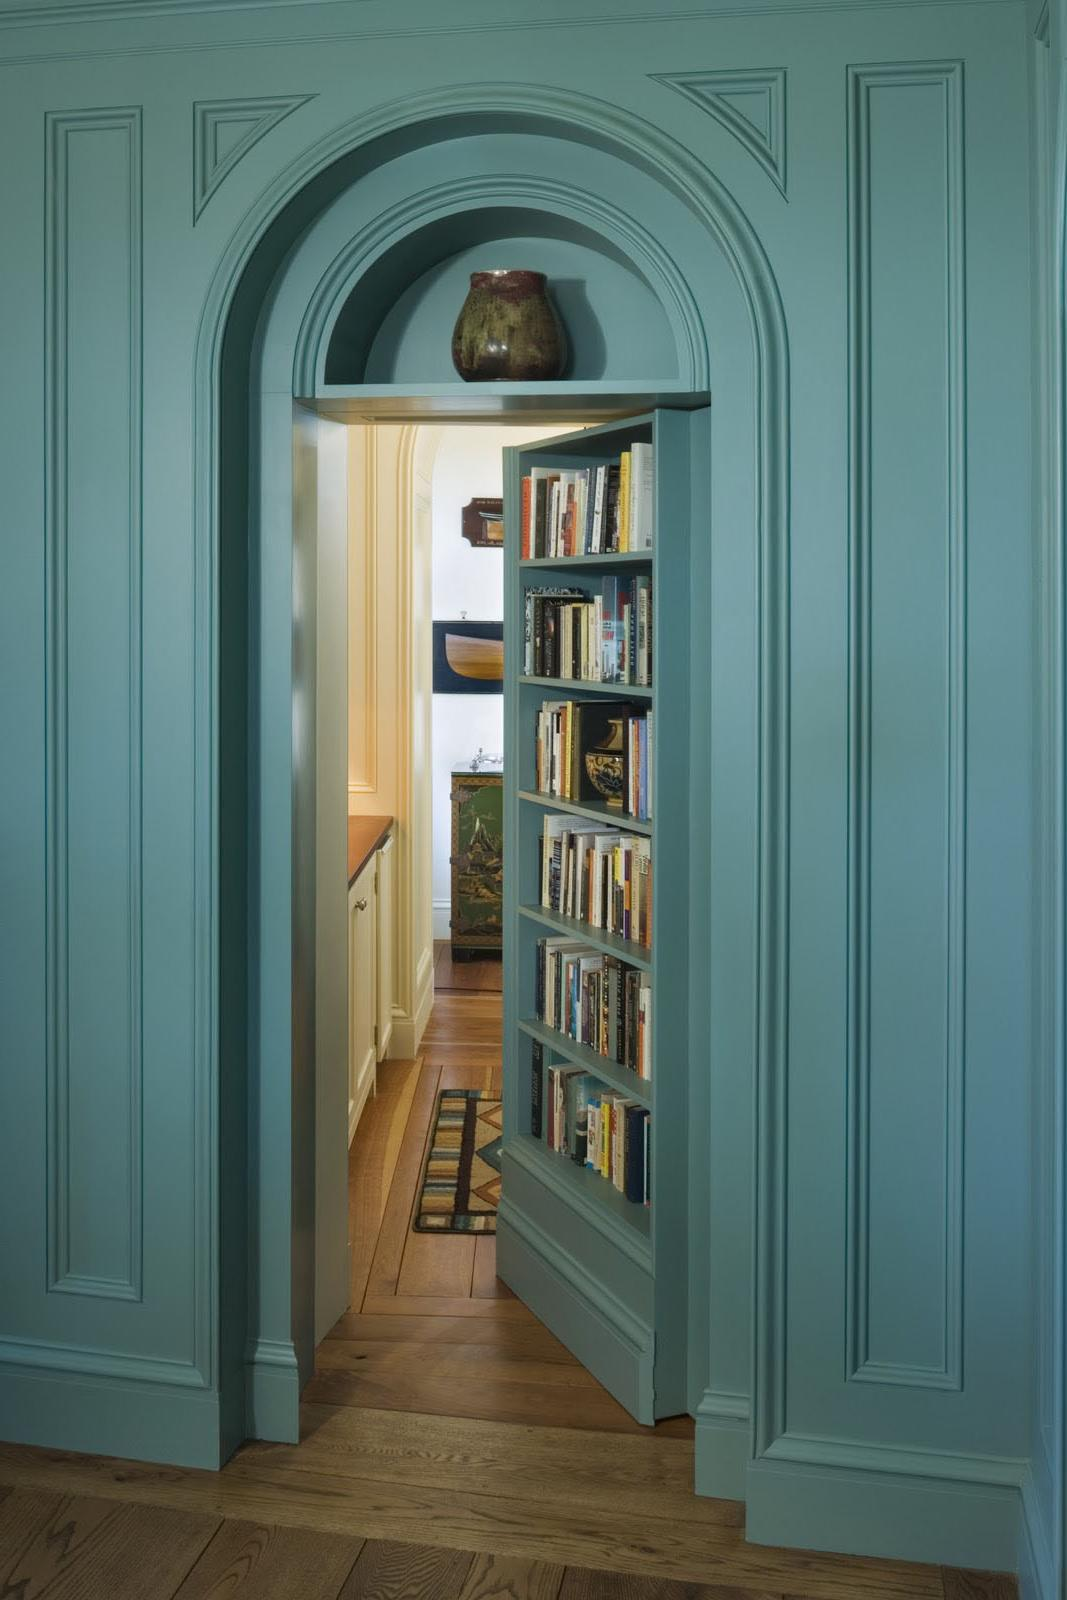 Hidden door with shelves